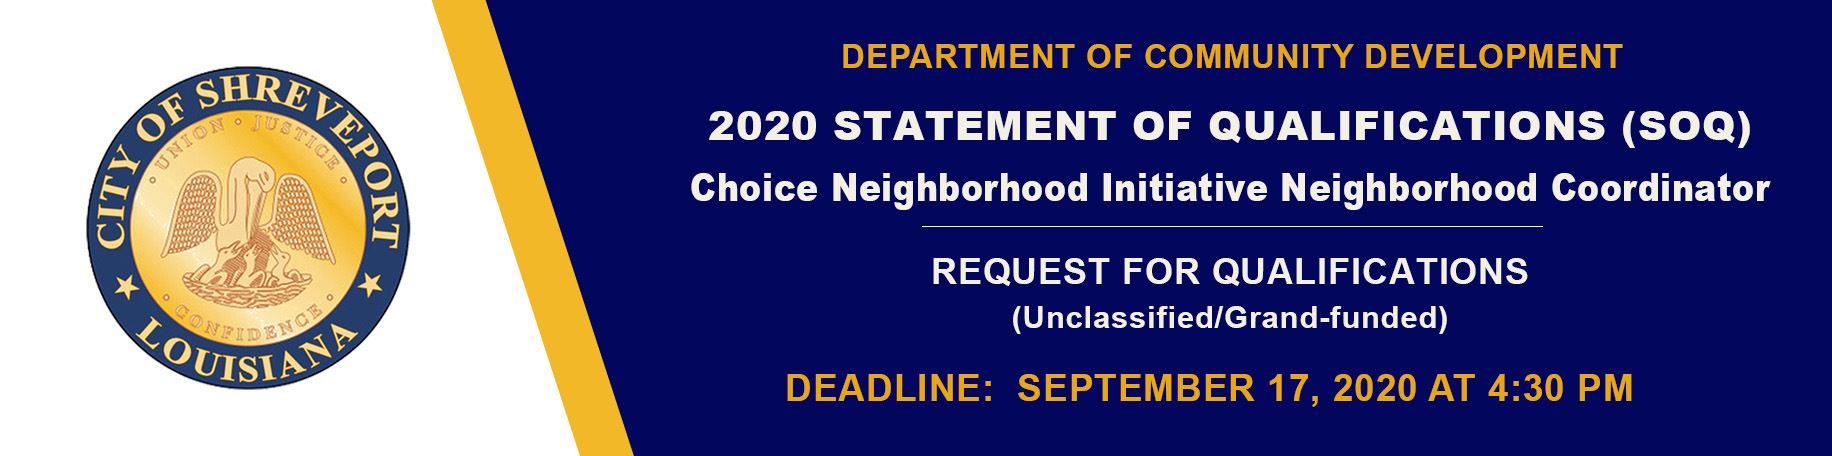 Statement of Qualifications for Choice Neighborhoods